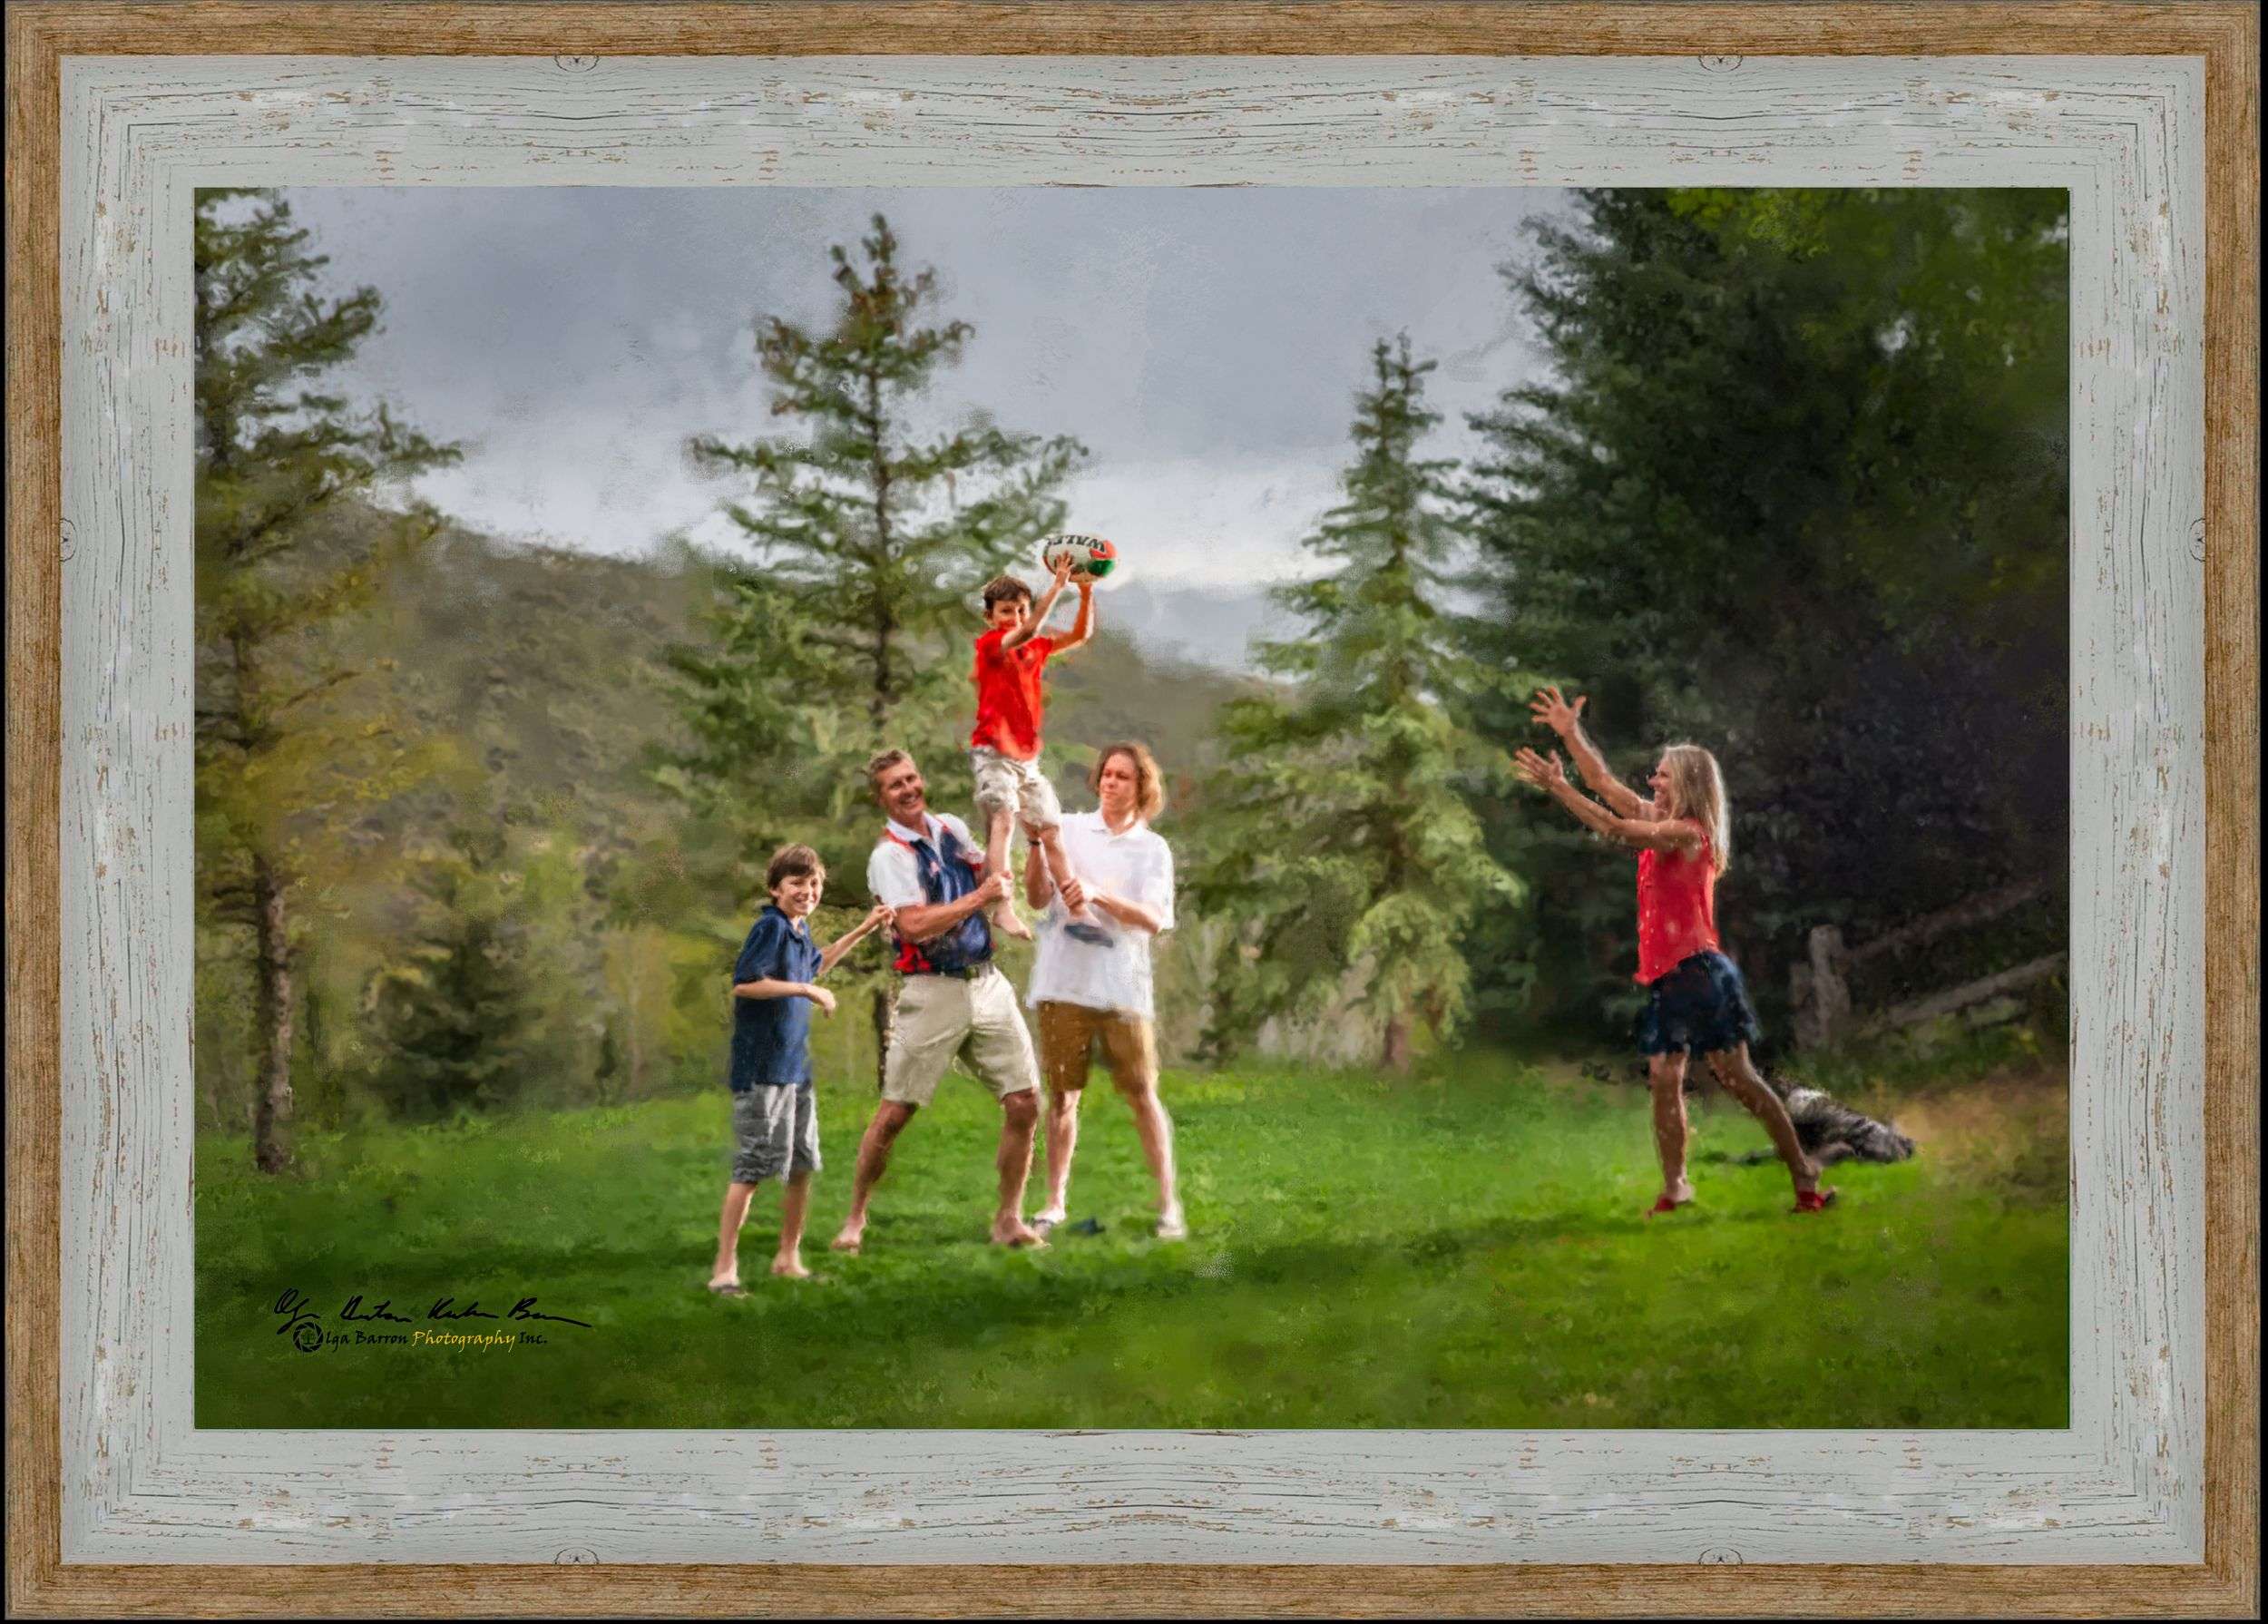 Framed painterly portrait of a family playing rugby